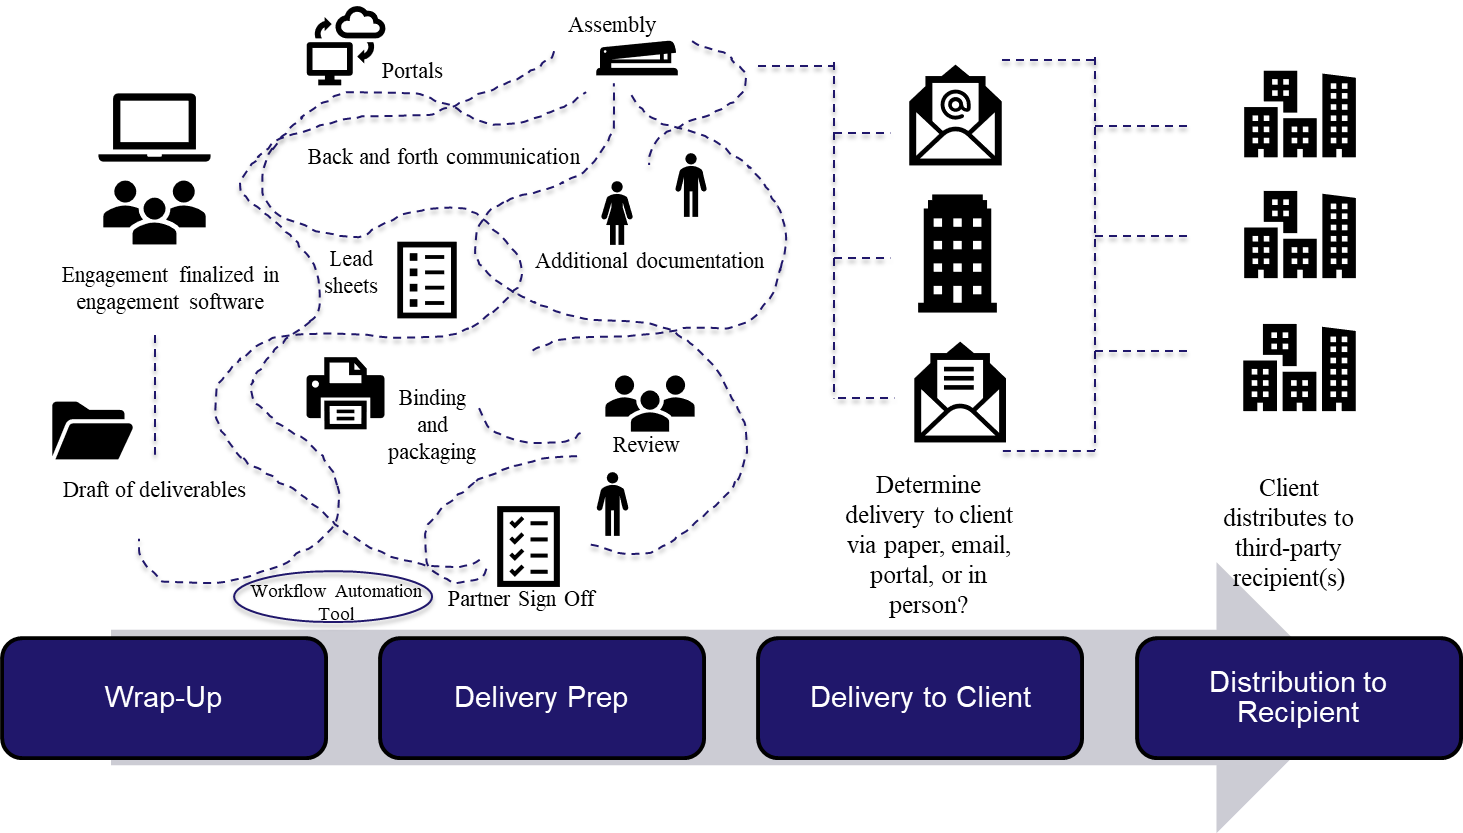 Figure 1 Wrap-up to Delivery to Distribution